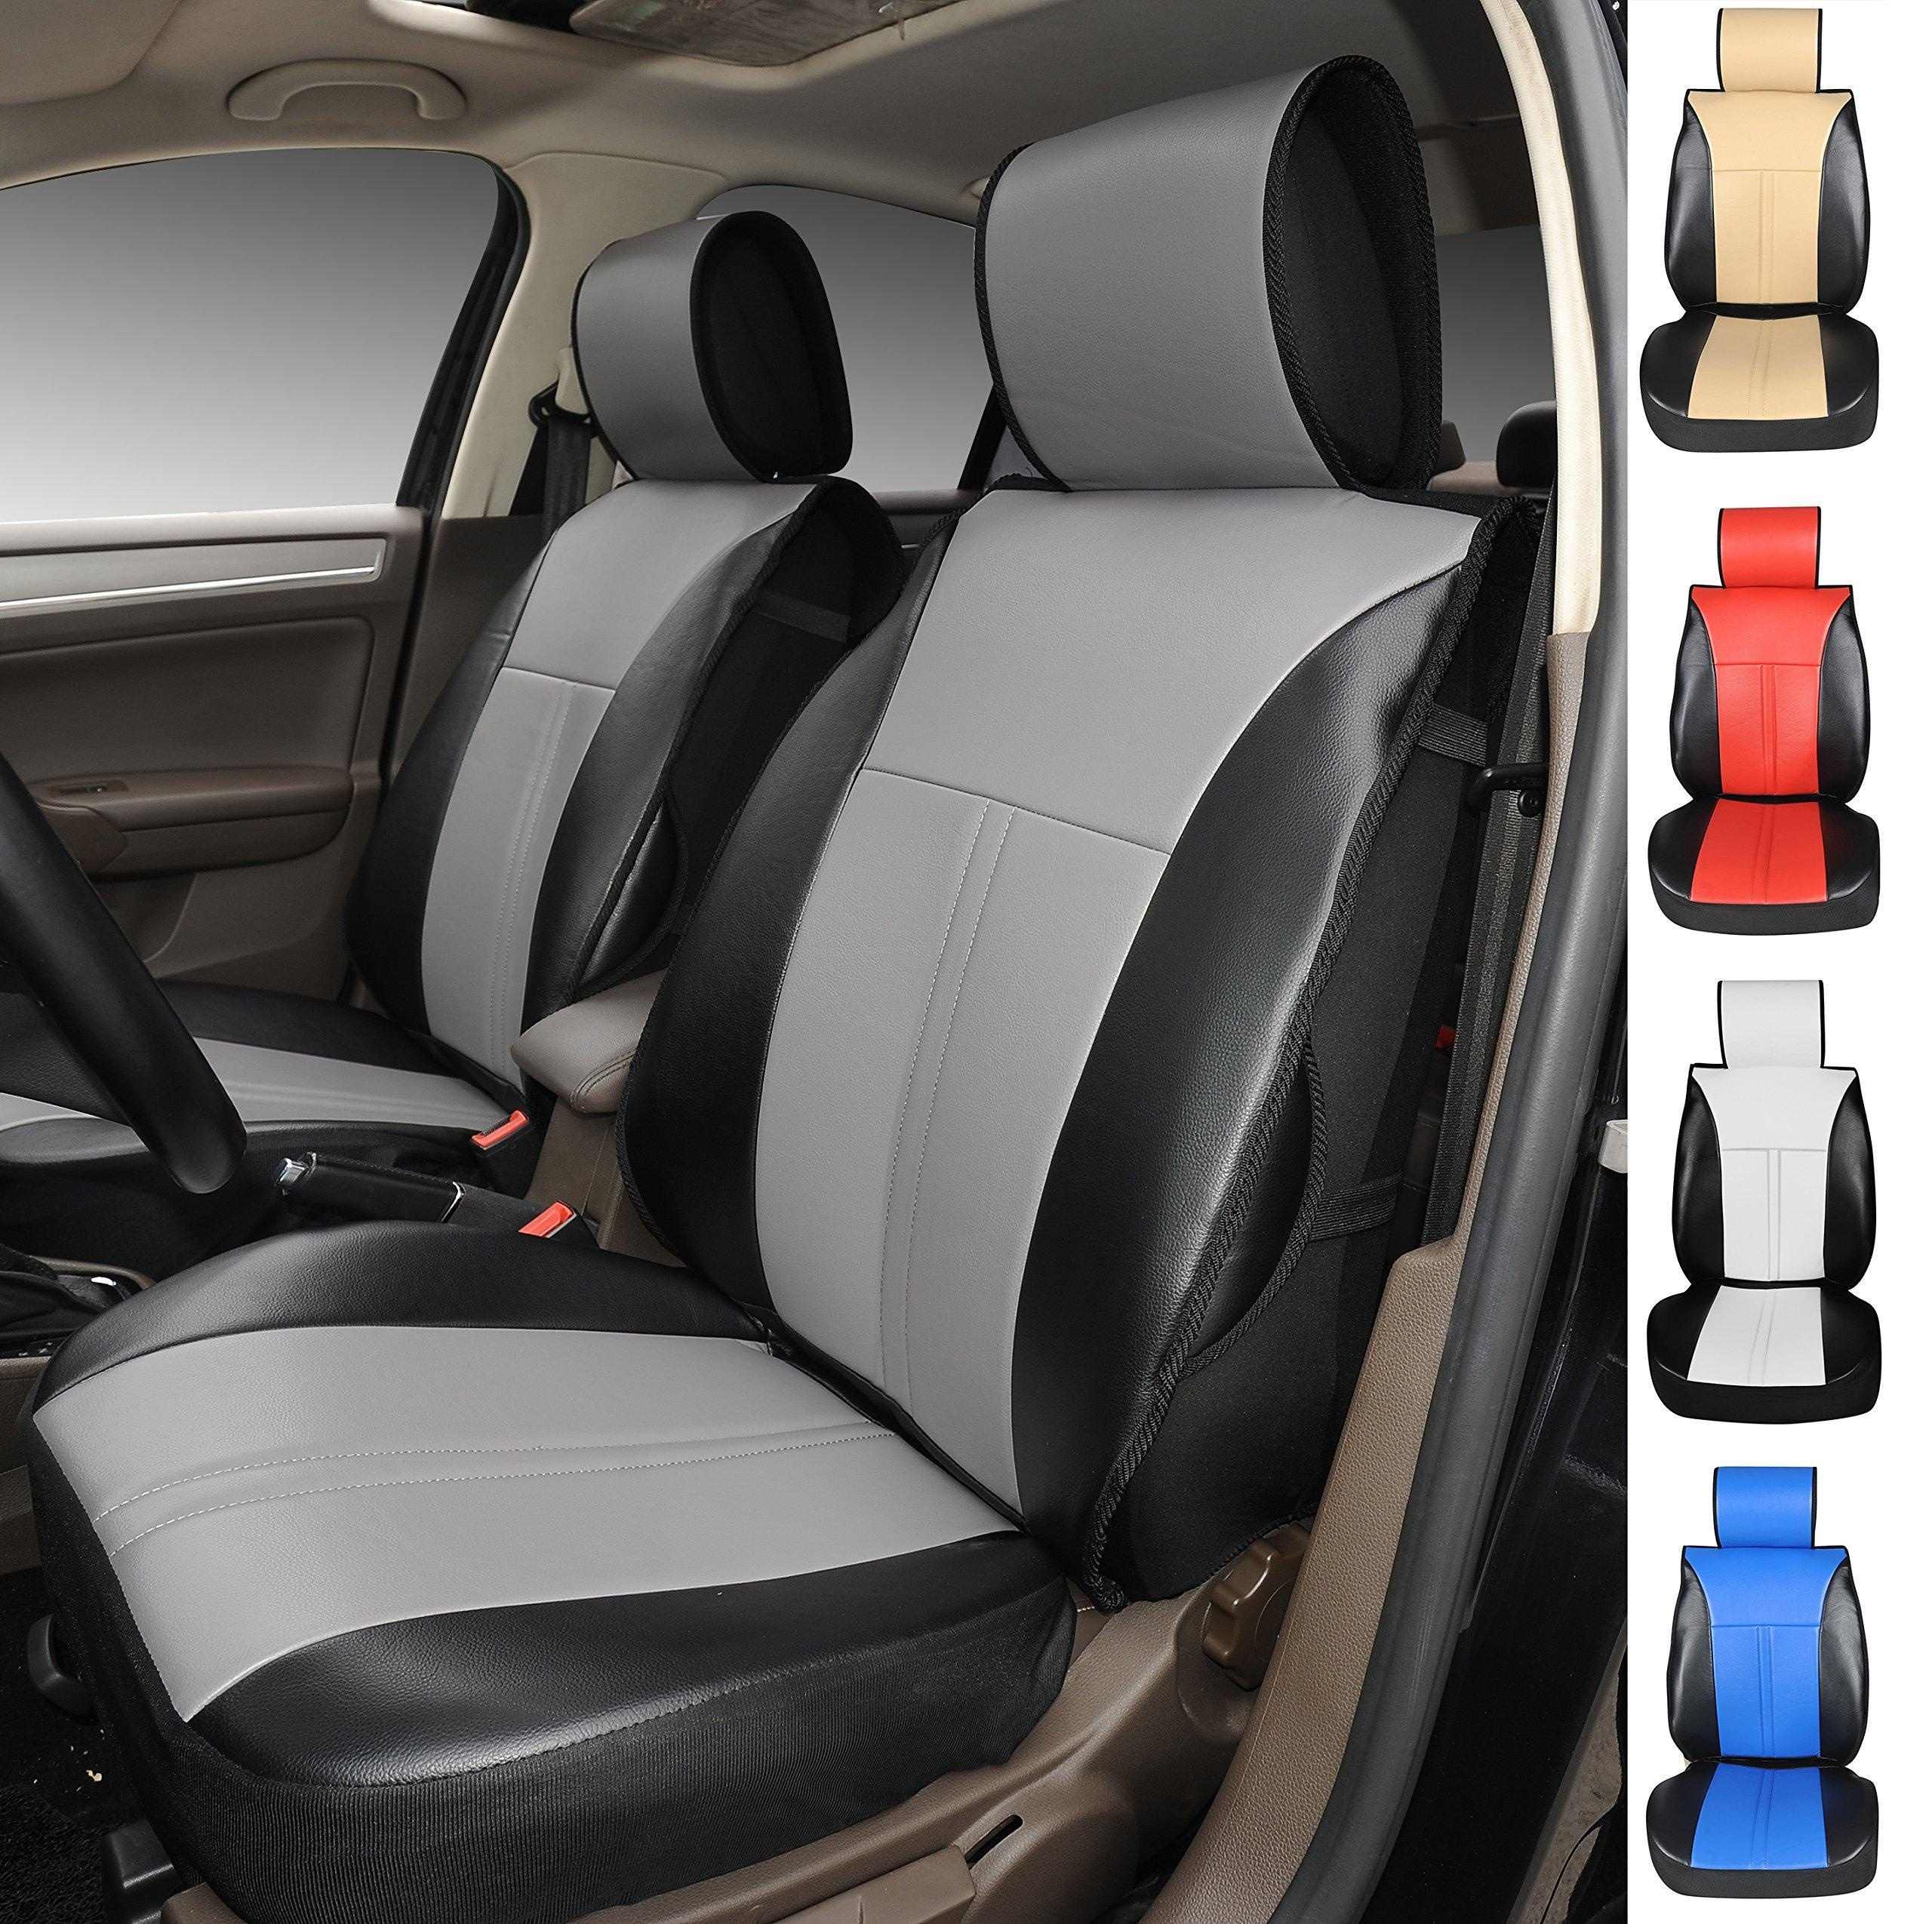 Online Store 120904s Black Grey 2 Front Car Seat Cover Cushions Leather Like Vinyl Compatible